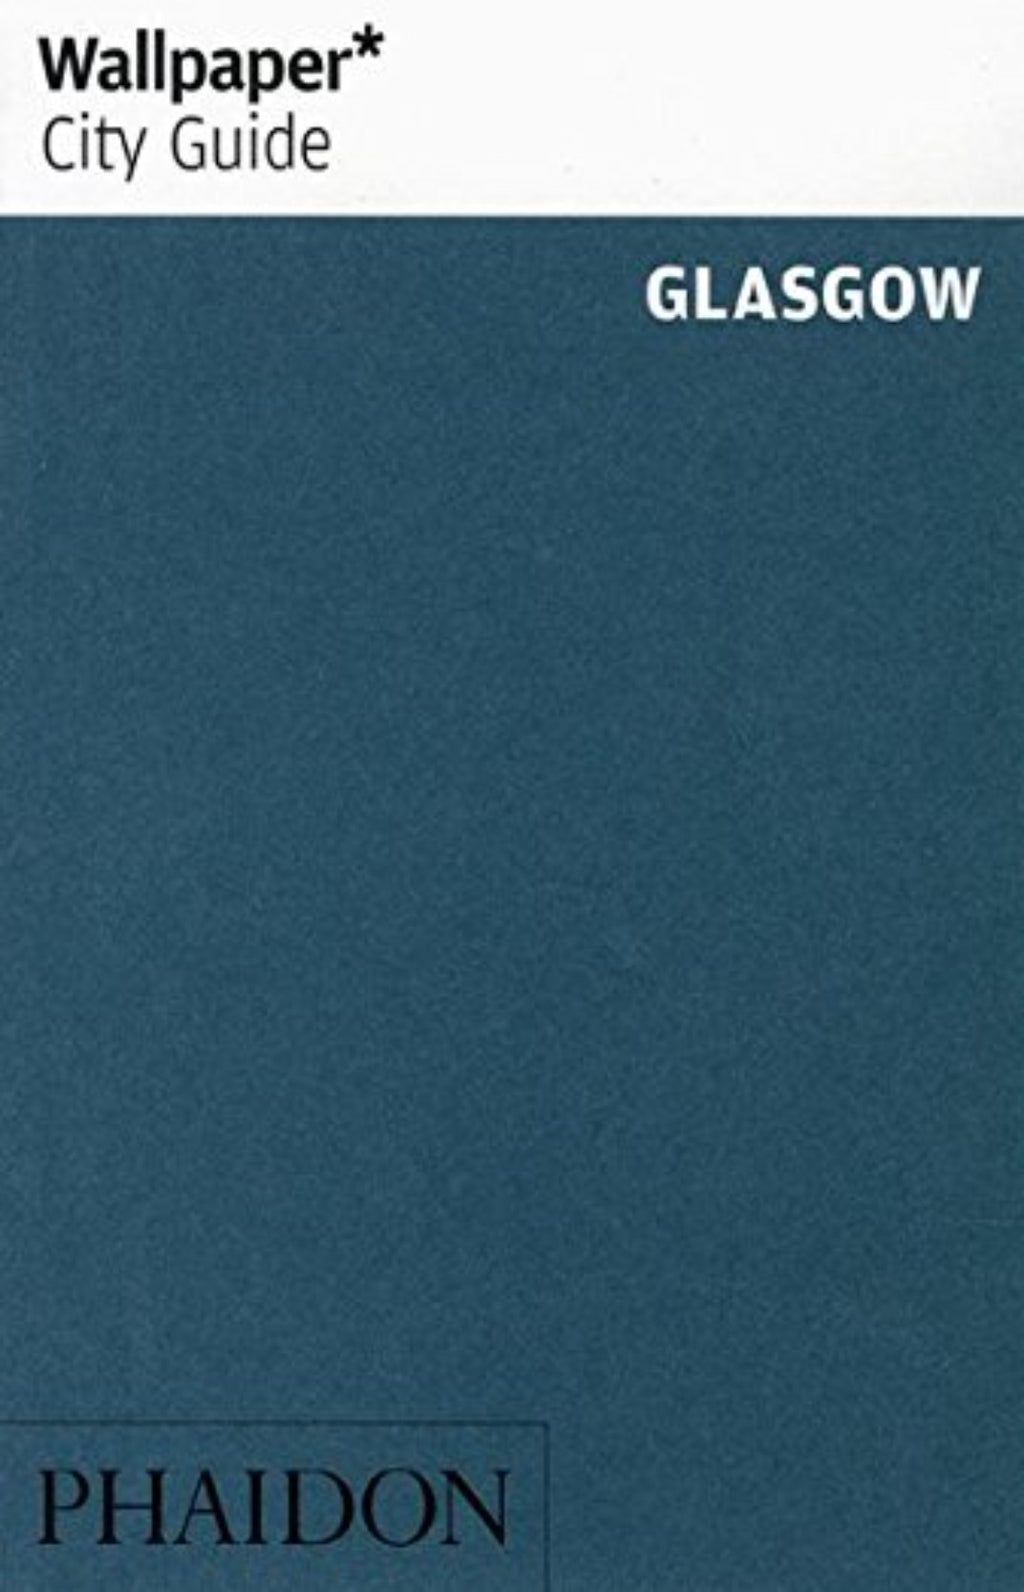 Wallpaper* City Guide - Glasgow